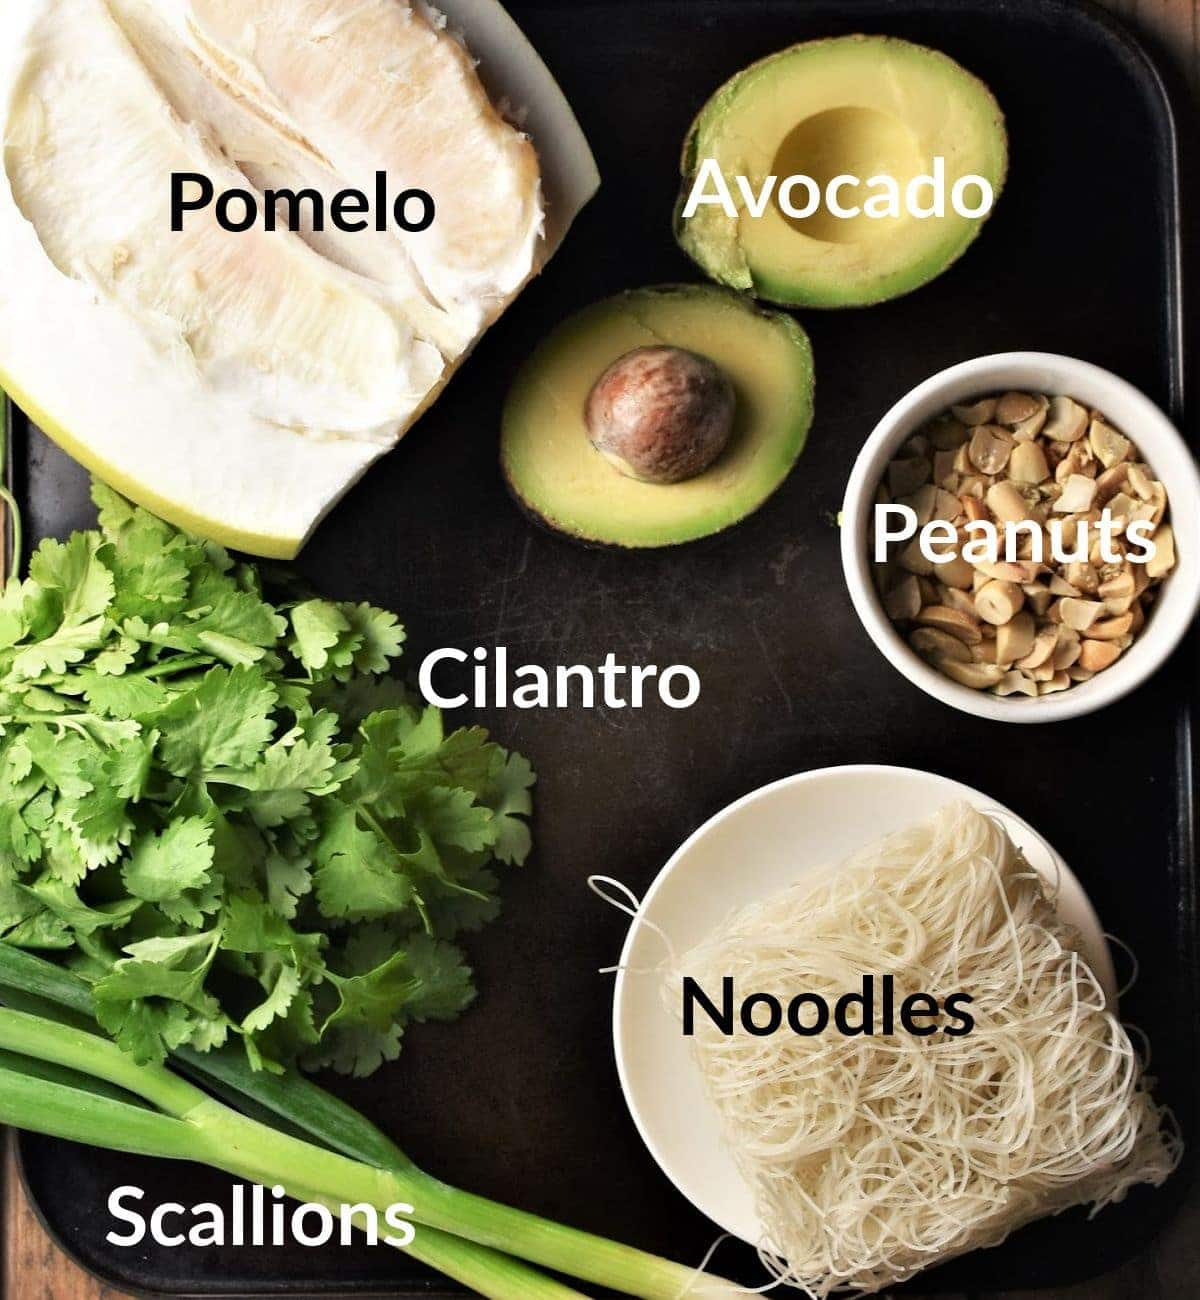 Pomelo salad ingredients in individual dishes.